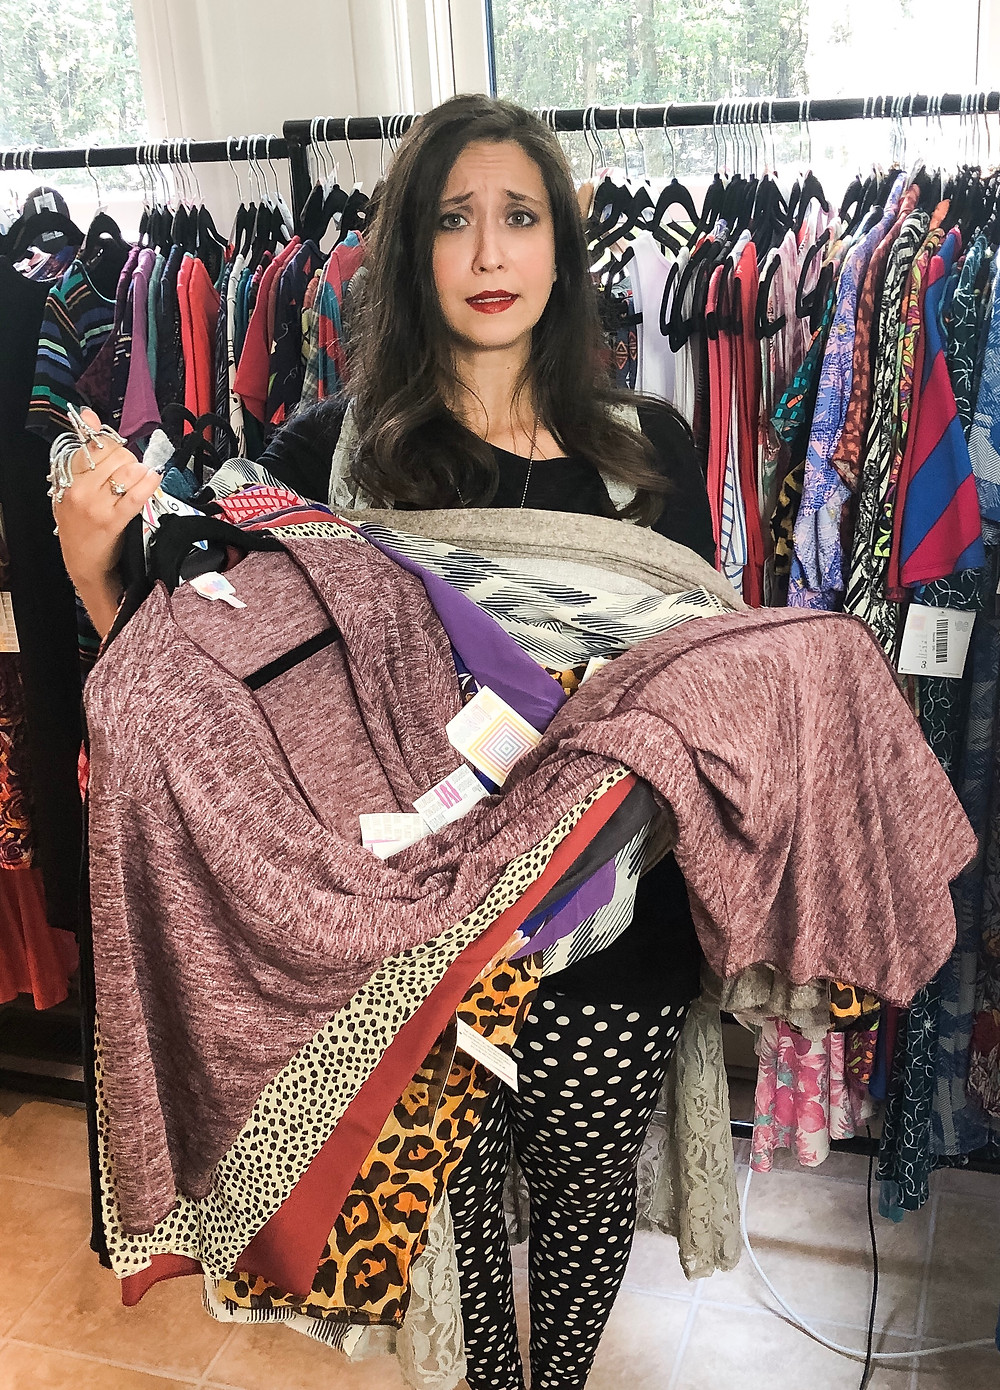 Lularoe Fashion Consultant in New Jersey